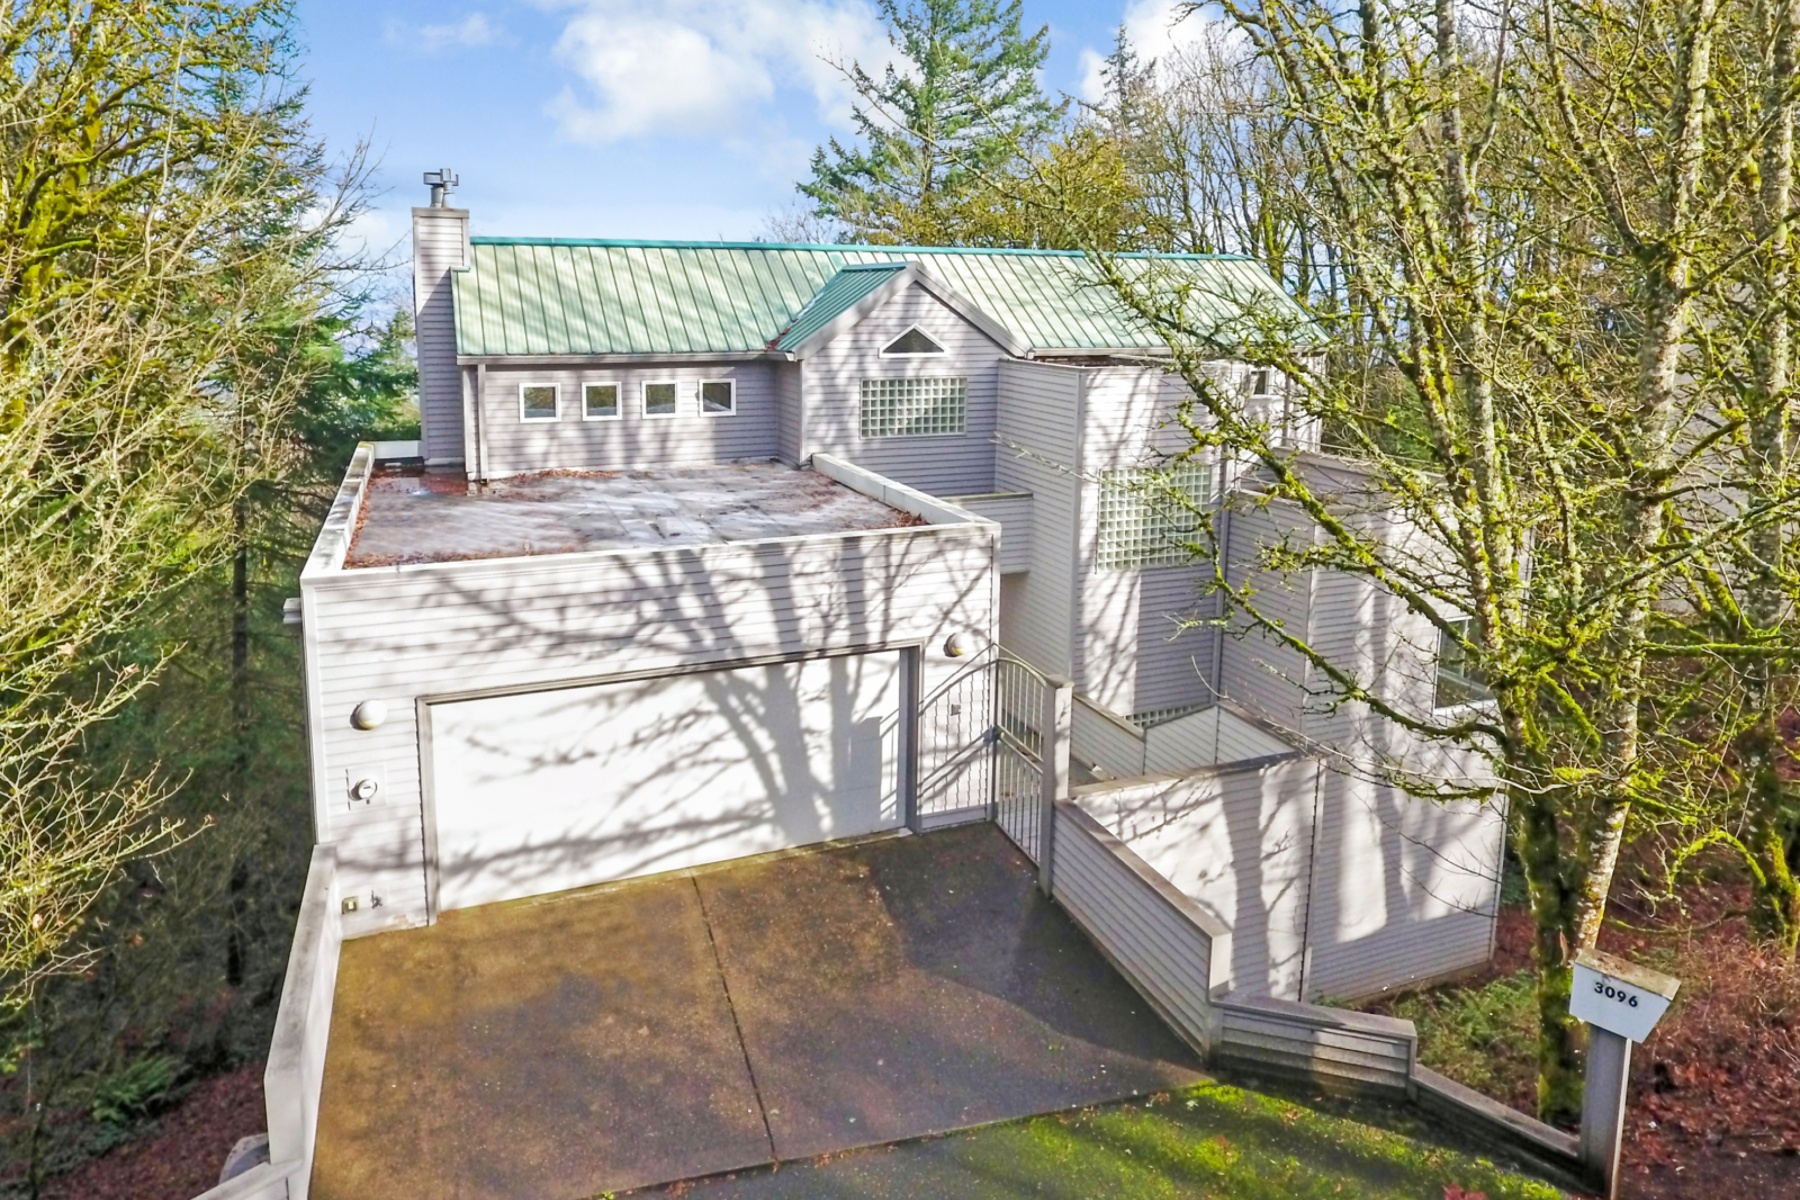 Single Family Home for Sale at 3096 SW FAIRMOUNT BLVD, PORTLAND Portland, Oregon, 97239 United States